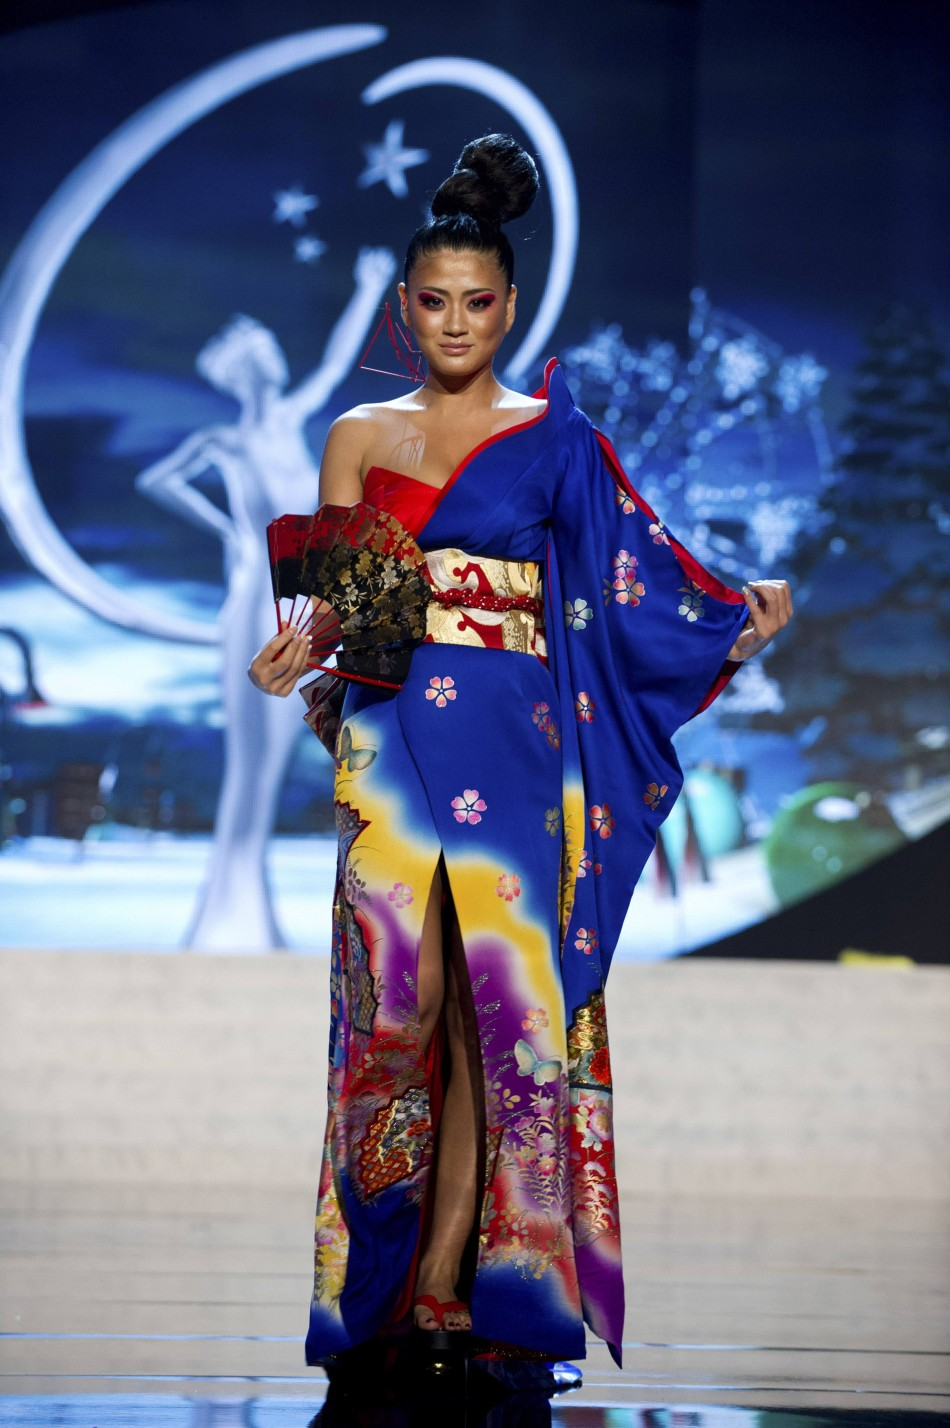 Miss Japan Ayako Hara on stage at the 2012 Miss Universe National Costume Show at PH Live in Las Vegas